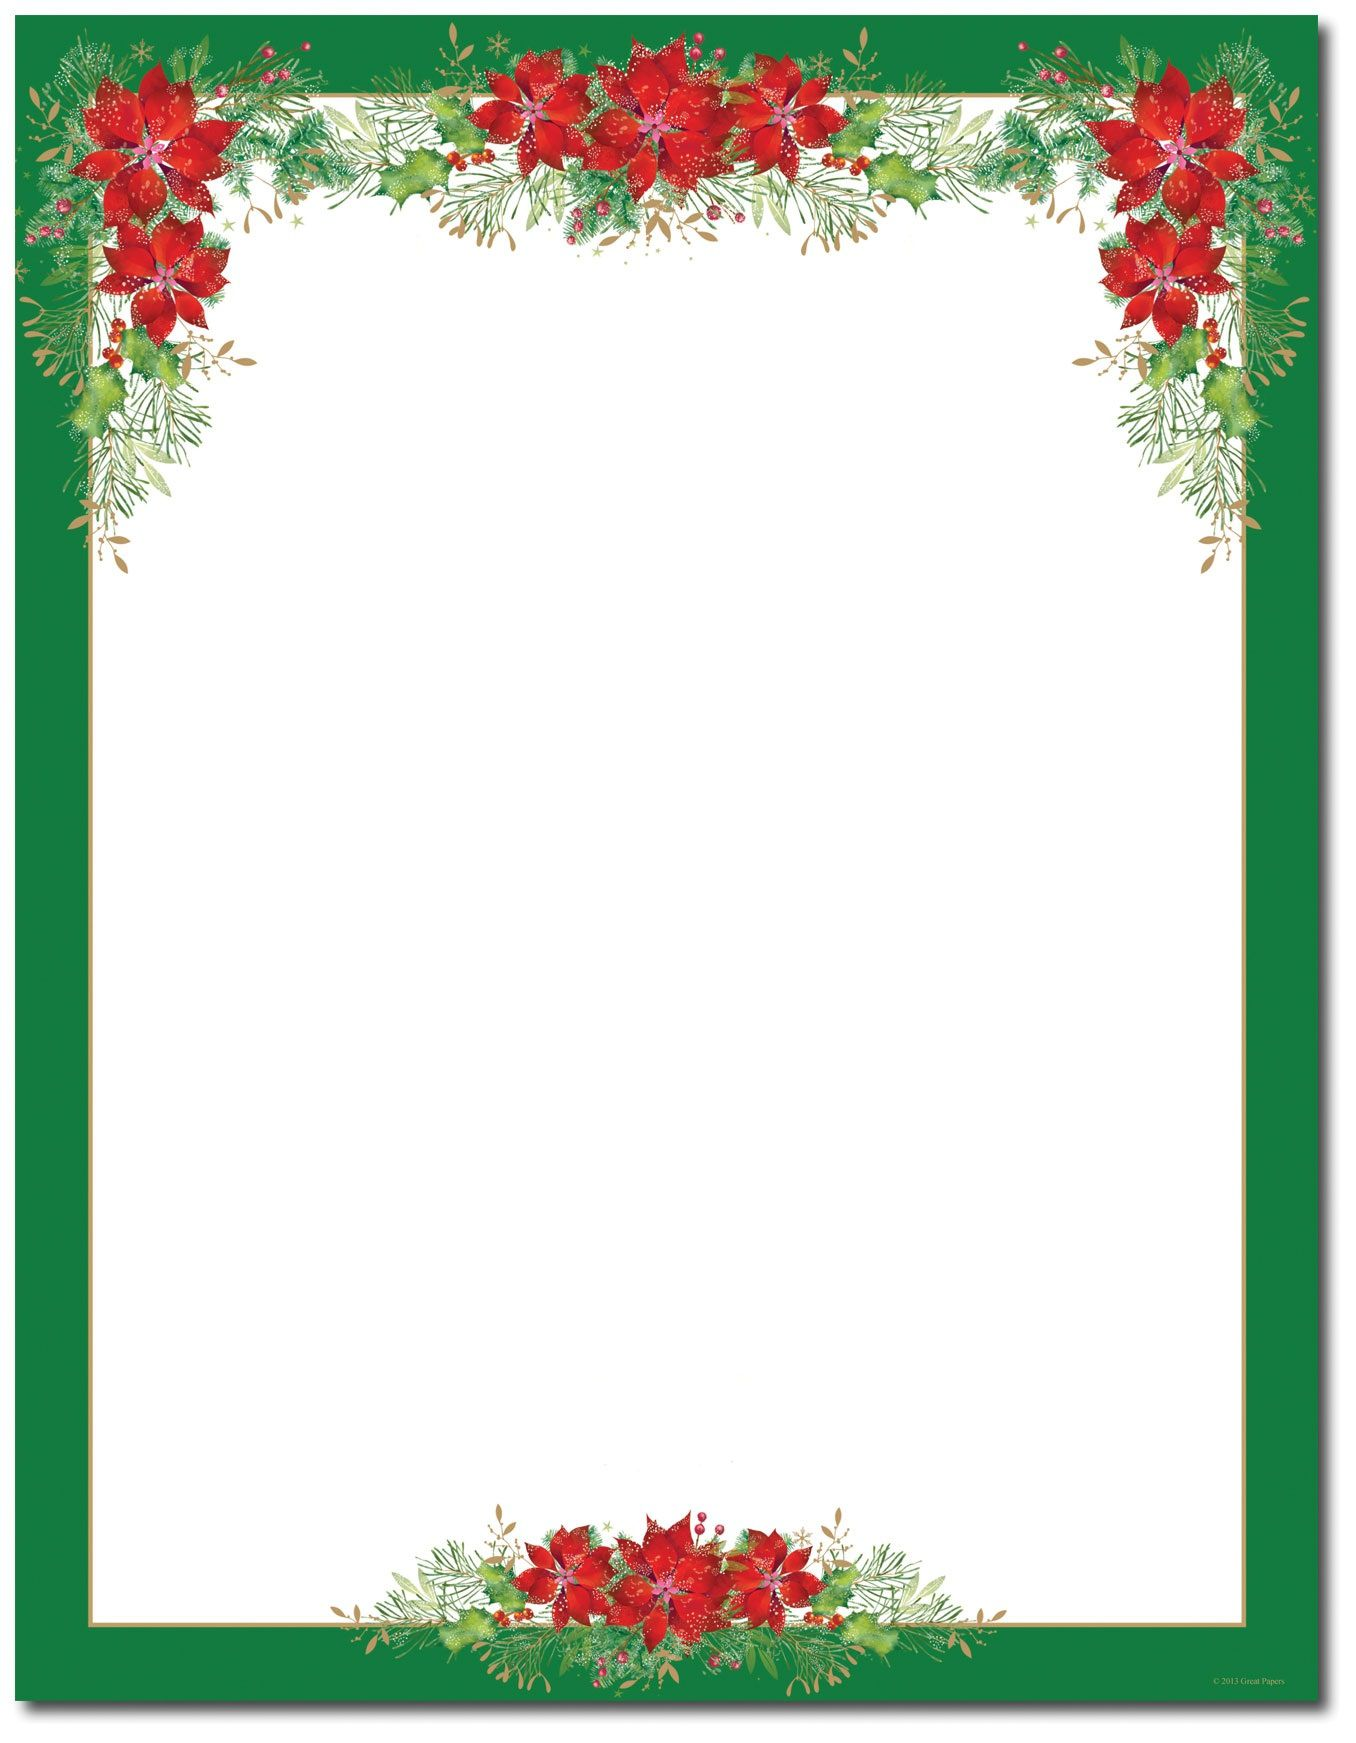 002 Imposing Christma Stationery Template Word Free Design  Religiou For DownloadableFull